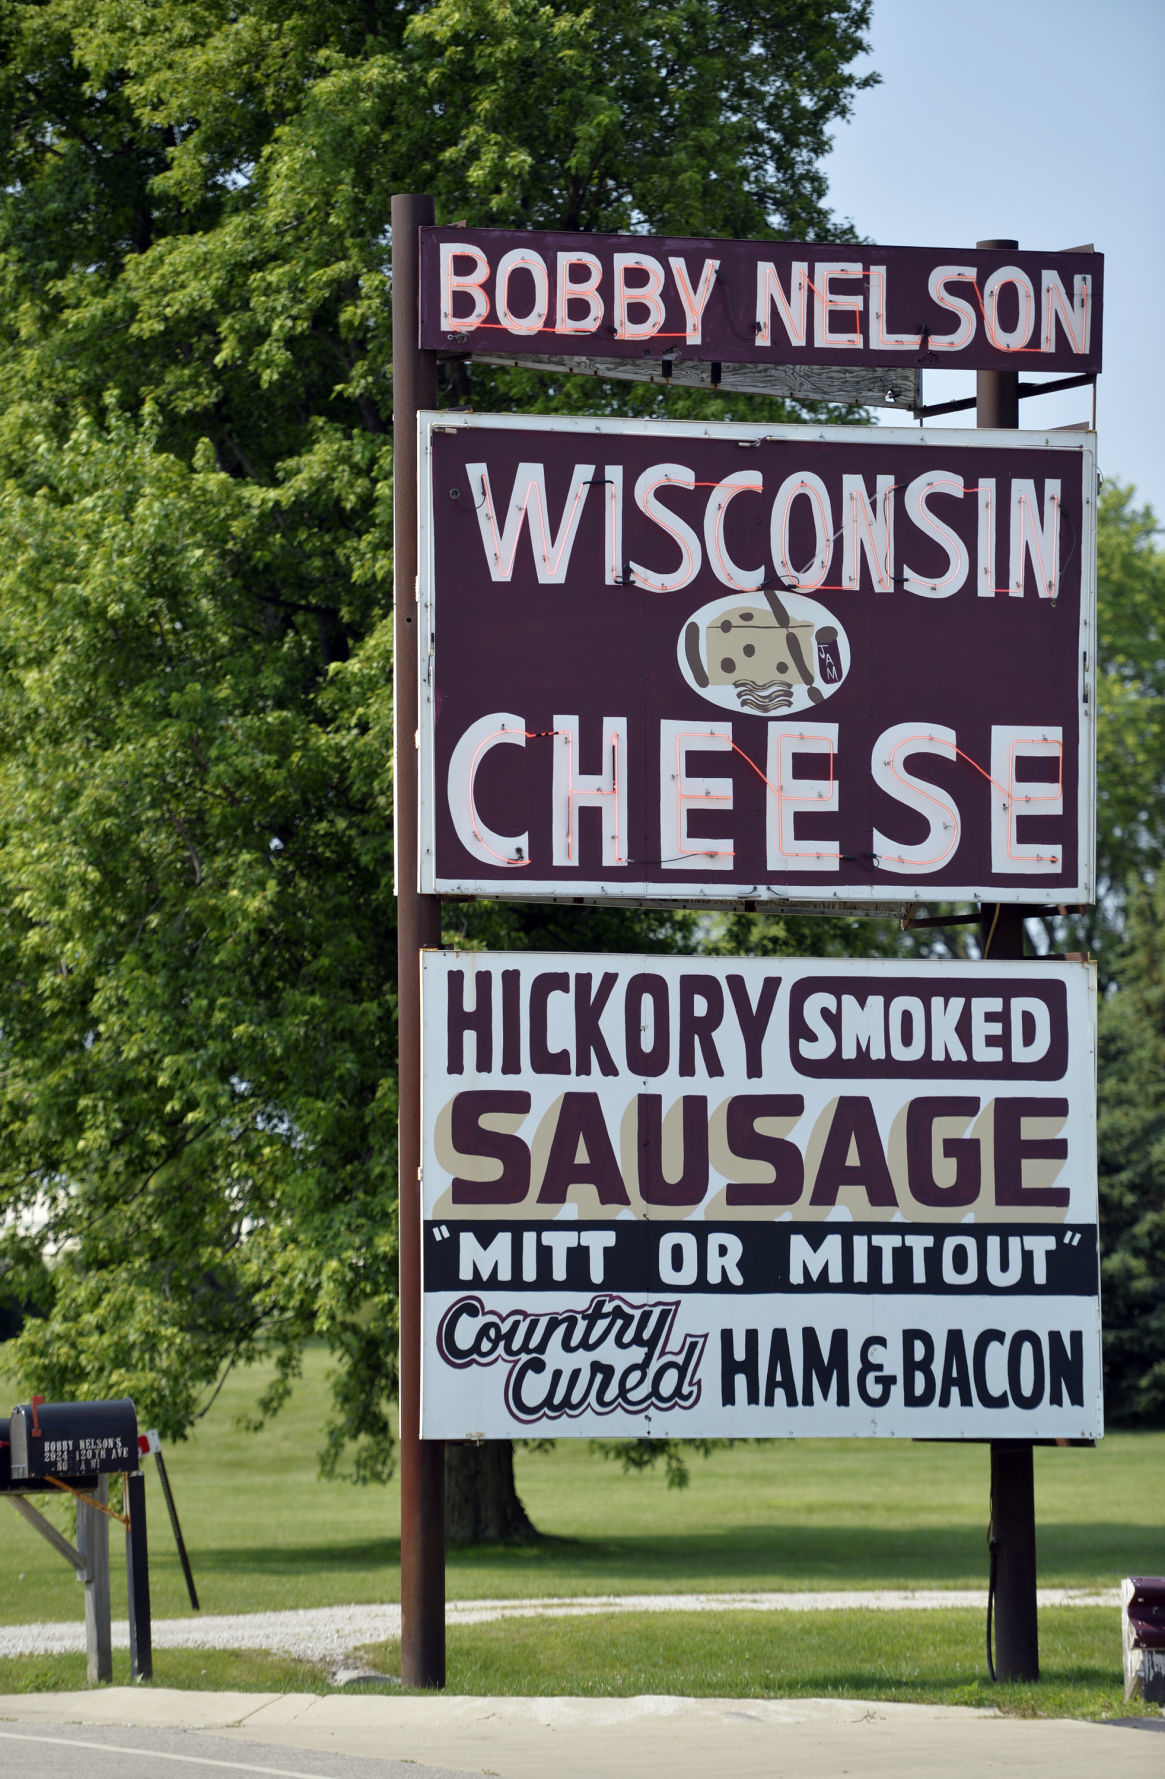 BOBBY NELSON CHEESE